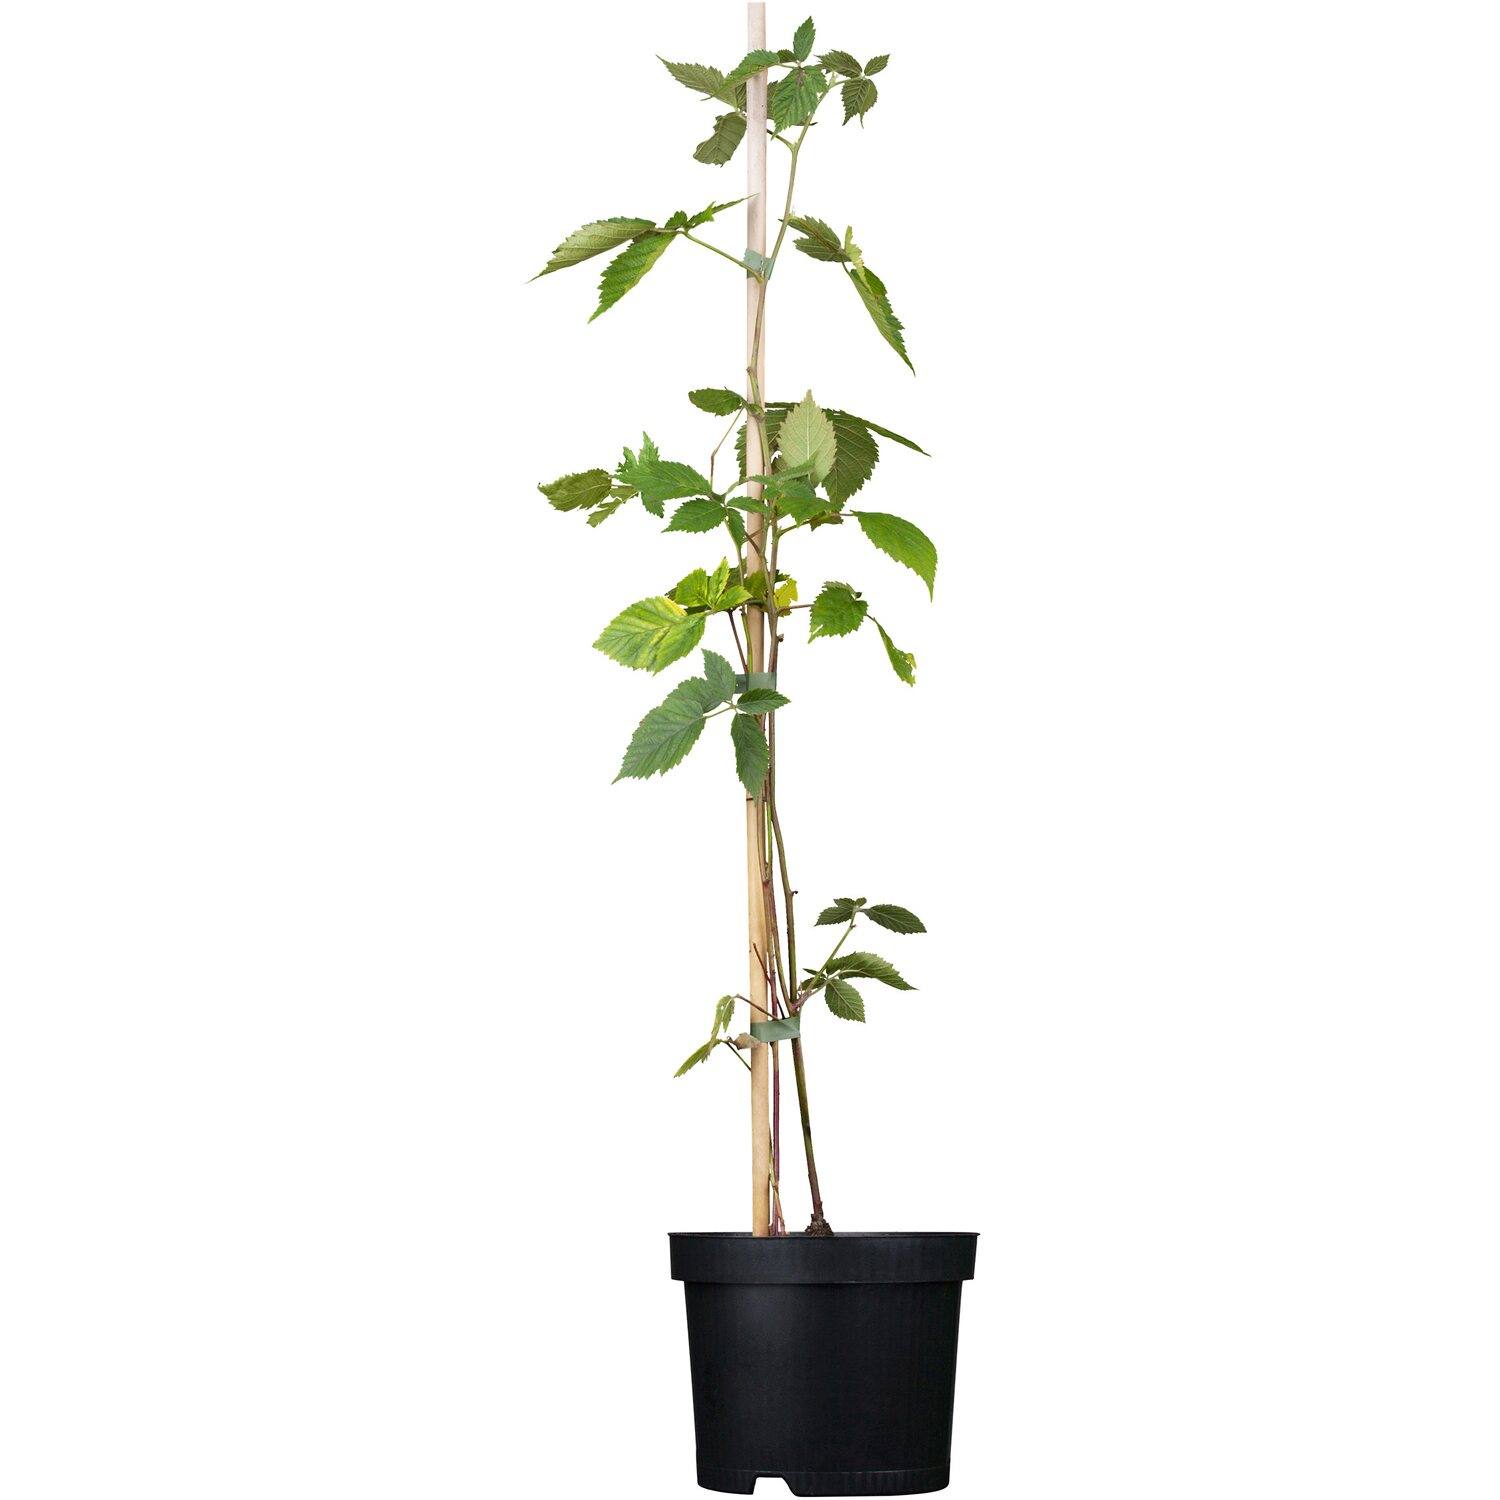 Brombeere Chester Thornless Schwarz Höhe ca. 20 - 30 cm Topf ca. 2 l Rubus